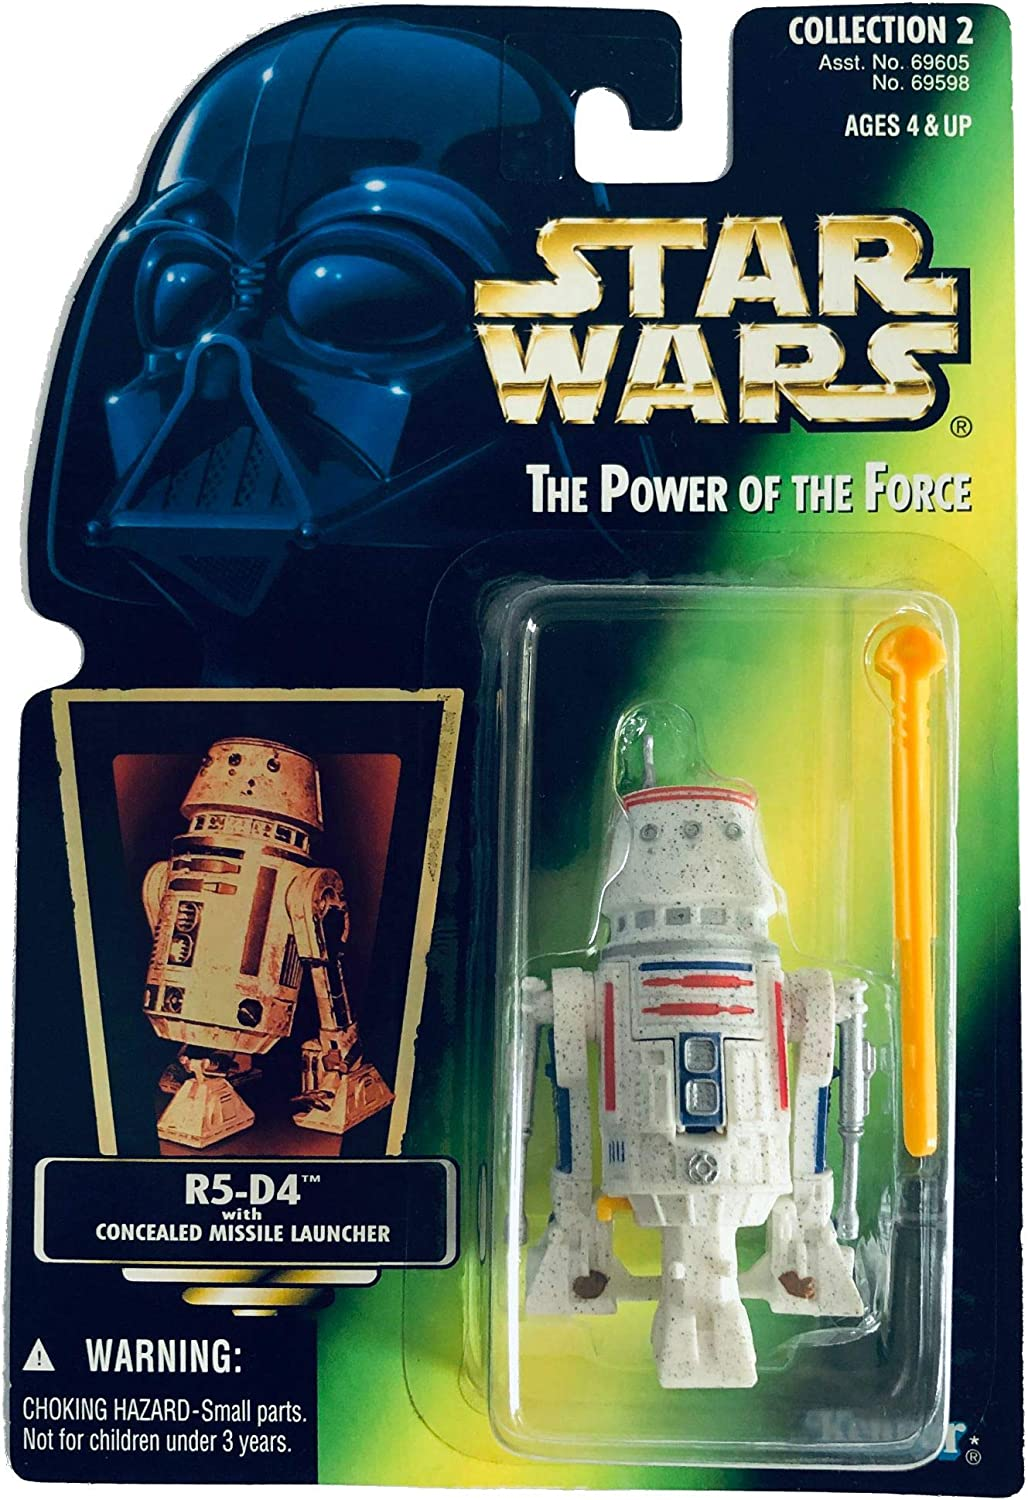 Star Wars The Power of the Force Action Figure - R5-D4 - Green Card with Holo...